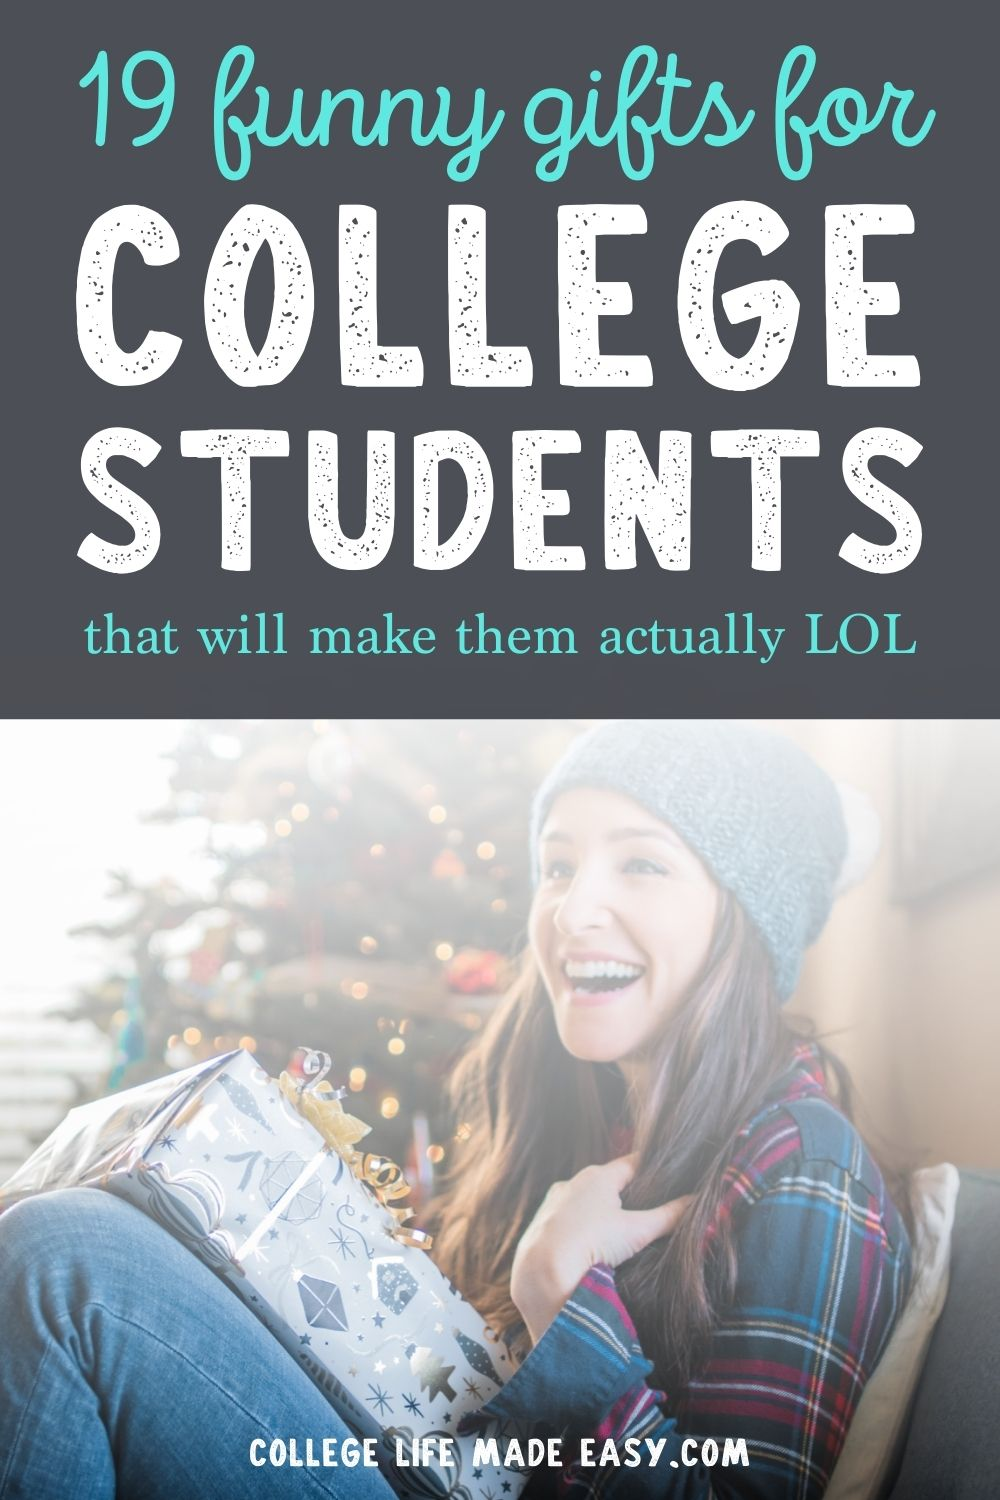 19 funny gifts for college students Pinterest infographic